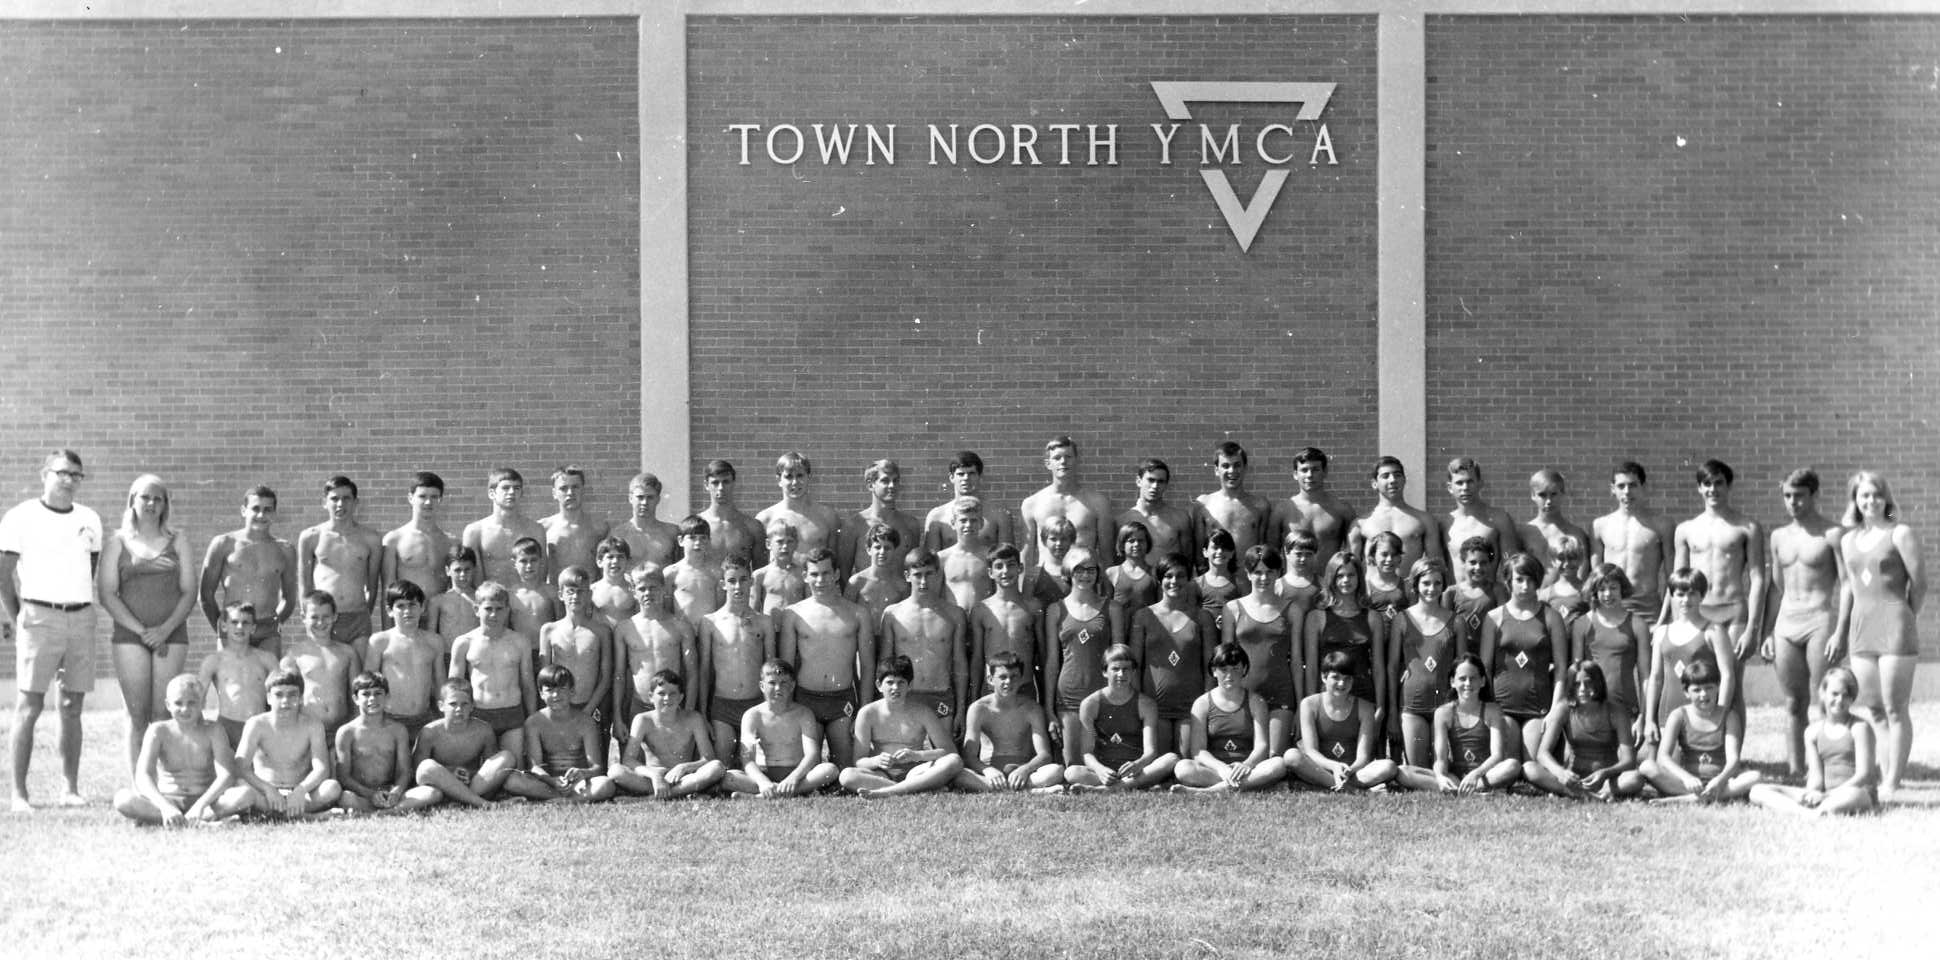 Town North YMCA Swimming Team